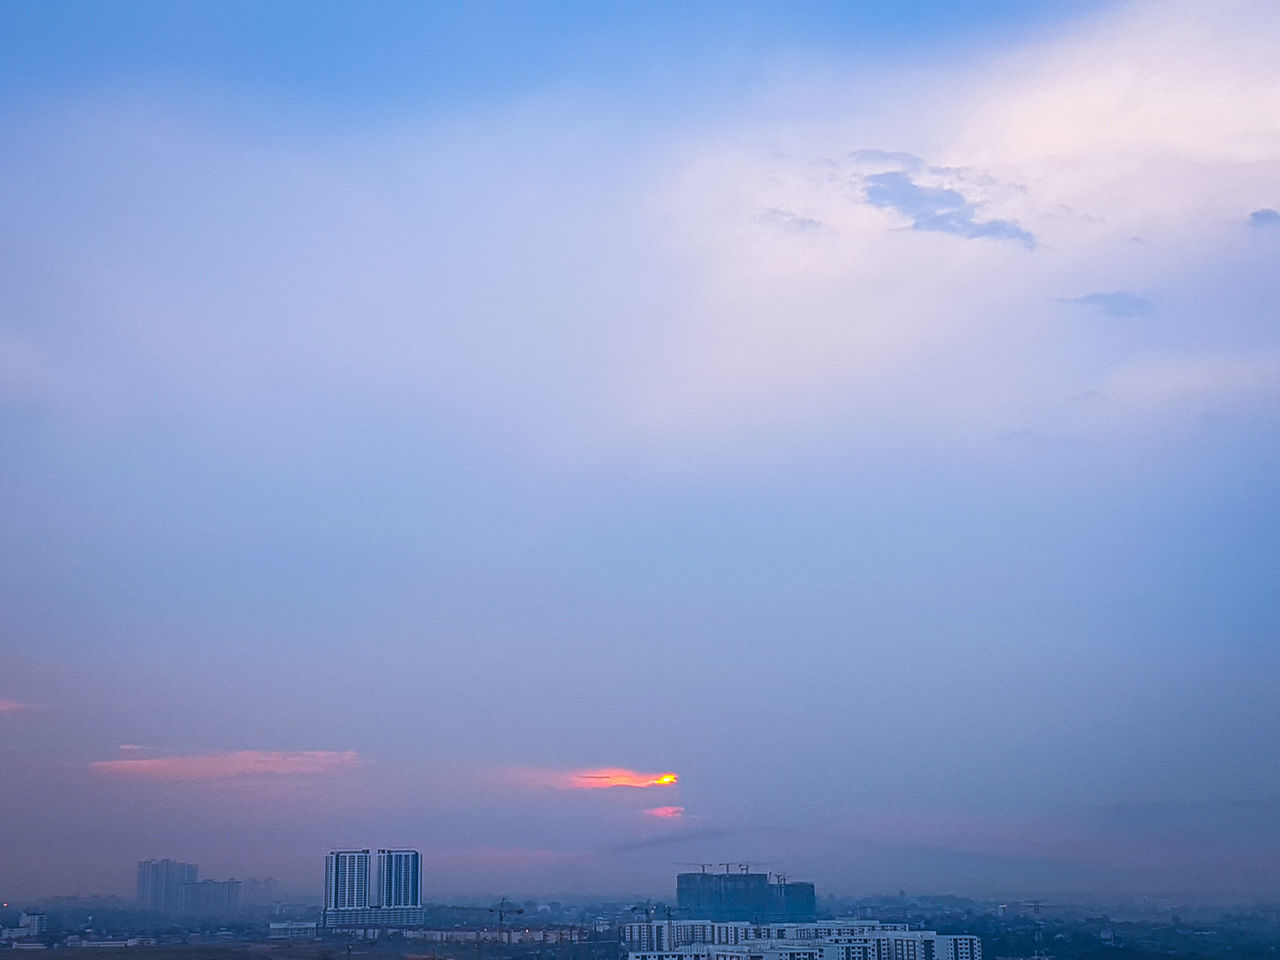 Urban Skyline Skyscraper City Cityscape Sky Environment Outdoors Architecture Cloud - Sky Travel Destinations Downtown District Building Exterior City Life Built Structure No People Sunset Night Illuminated Nature Nightlife Johor Bahru Malaysia